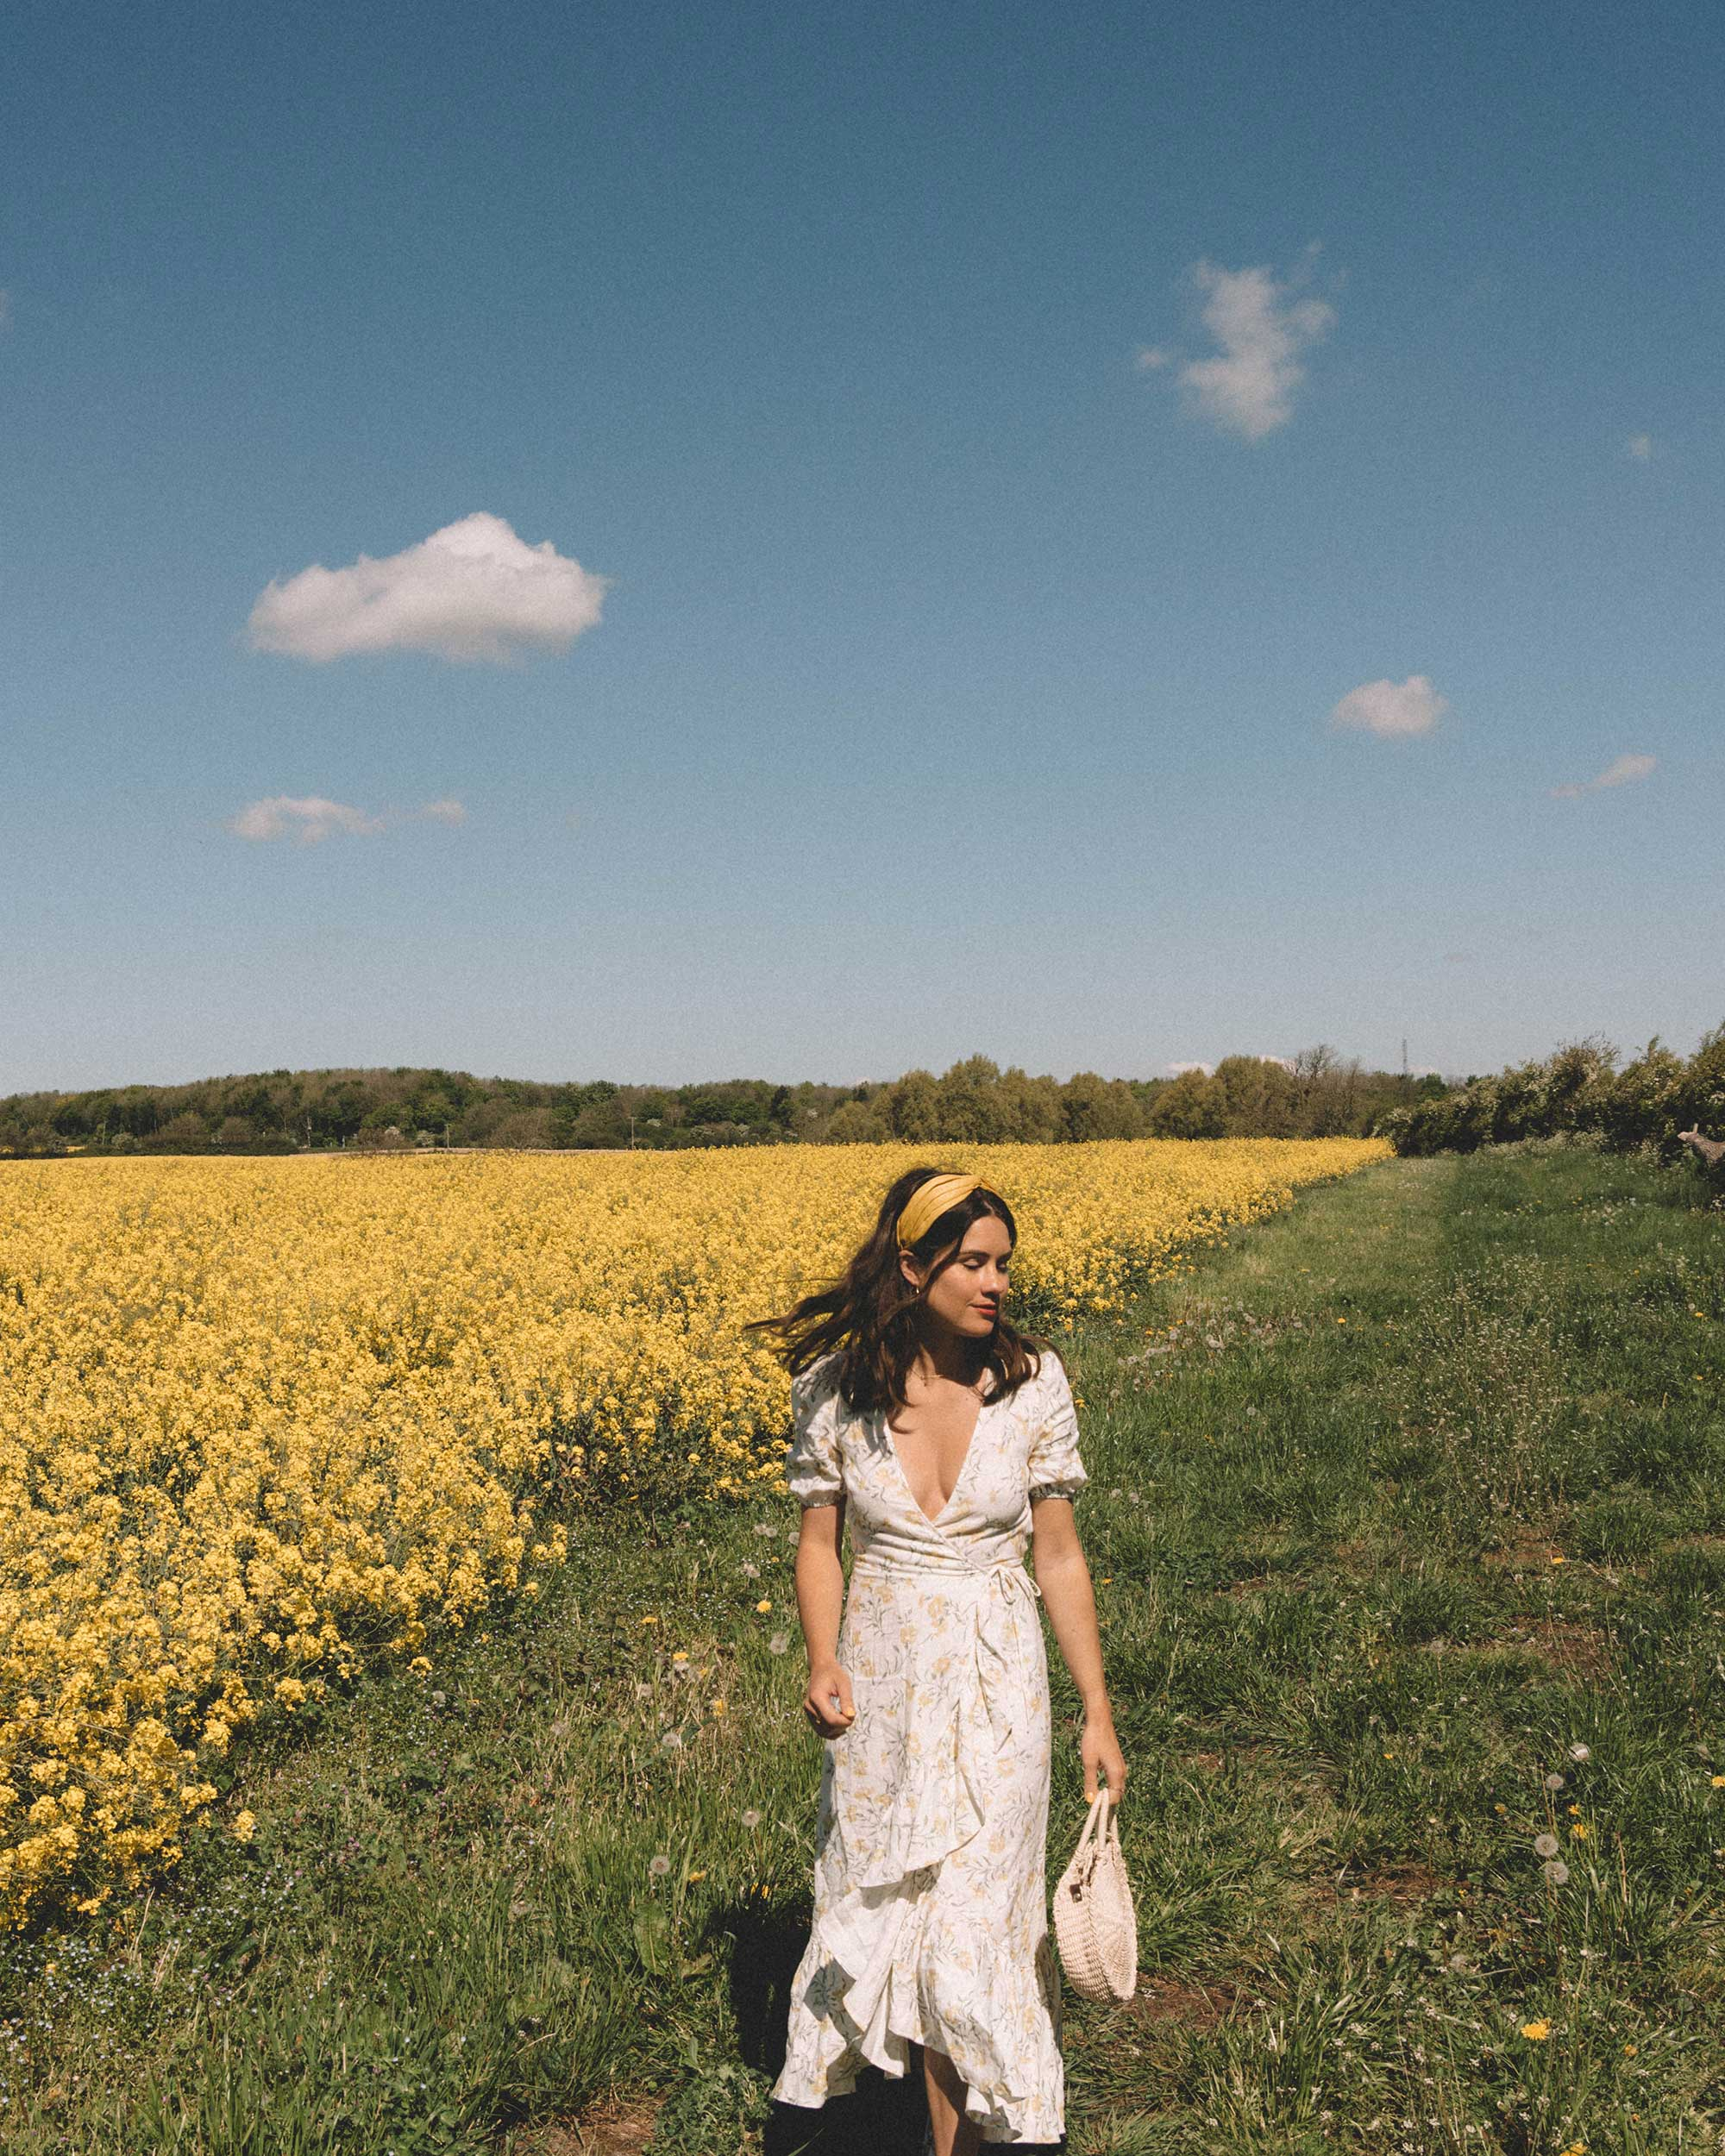 Sarah Butler of Sarah Styles Seattle wears And Other Stories Ruffled Linen Wrap Midi Dress and round woven bag in England Countryside for the perfect floral summer dress | @sarahchristine 1.jpg